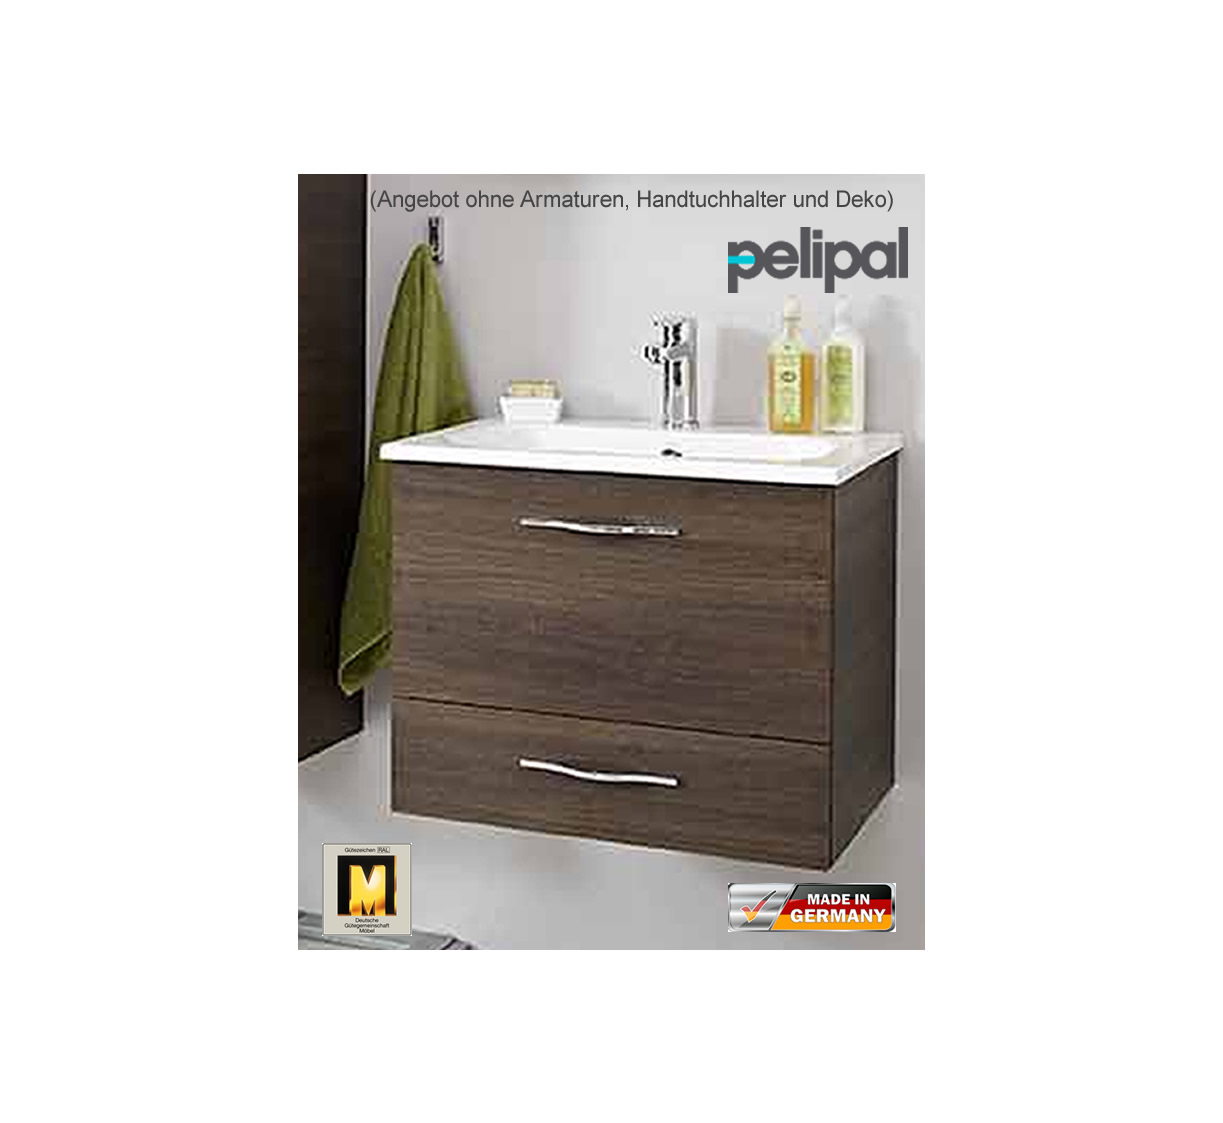 pelipal solitaire 6110 waschtisch set 60 cm impulsbad. Black Bedroom Furniture Sets. Home Design Ideas